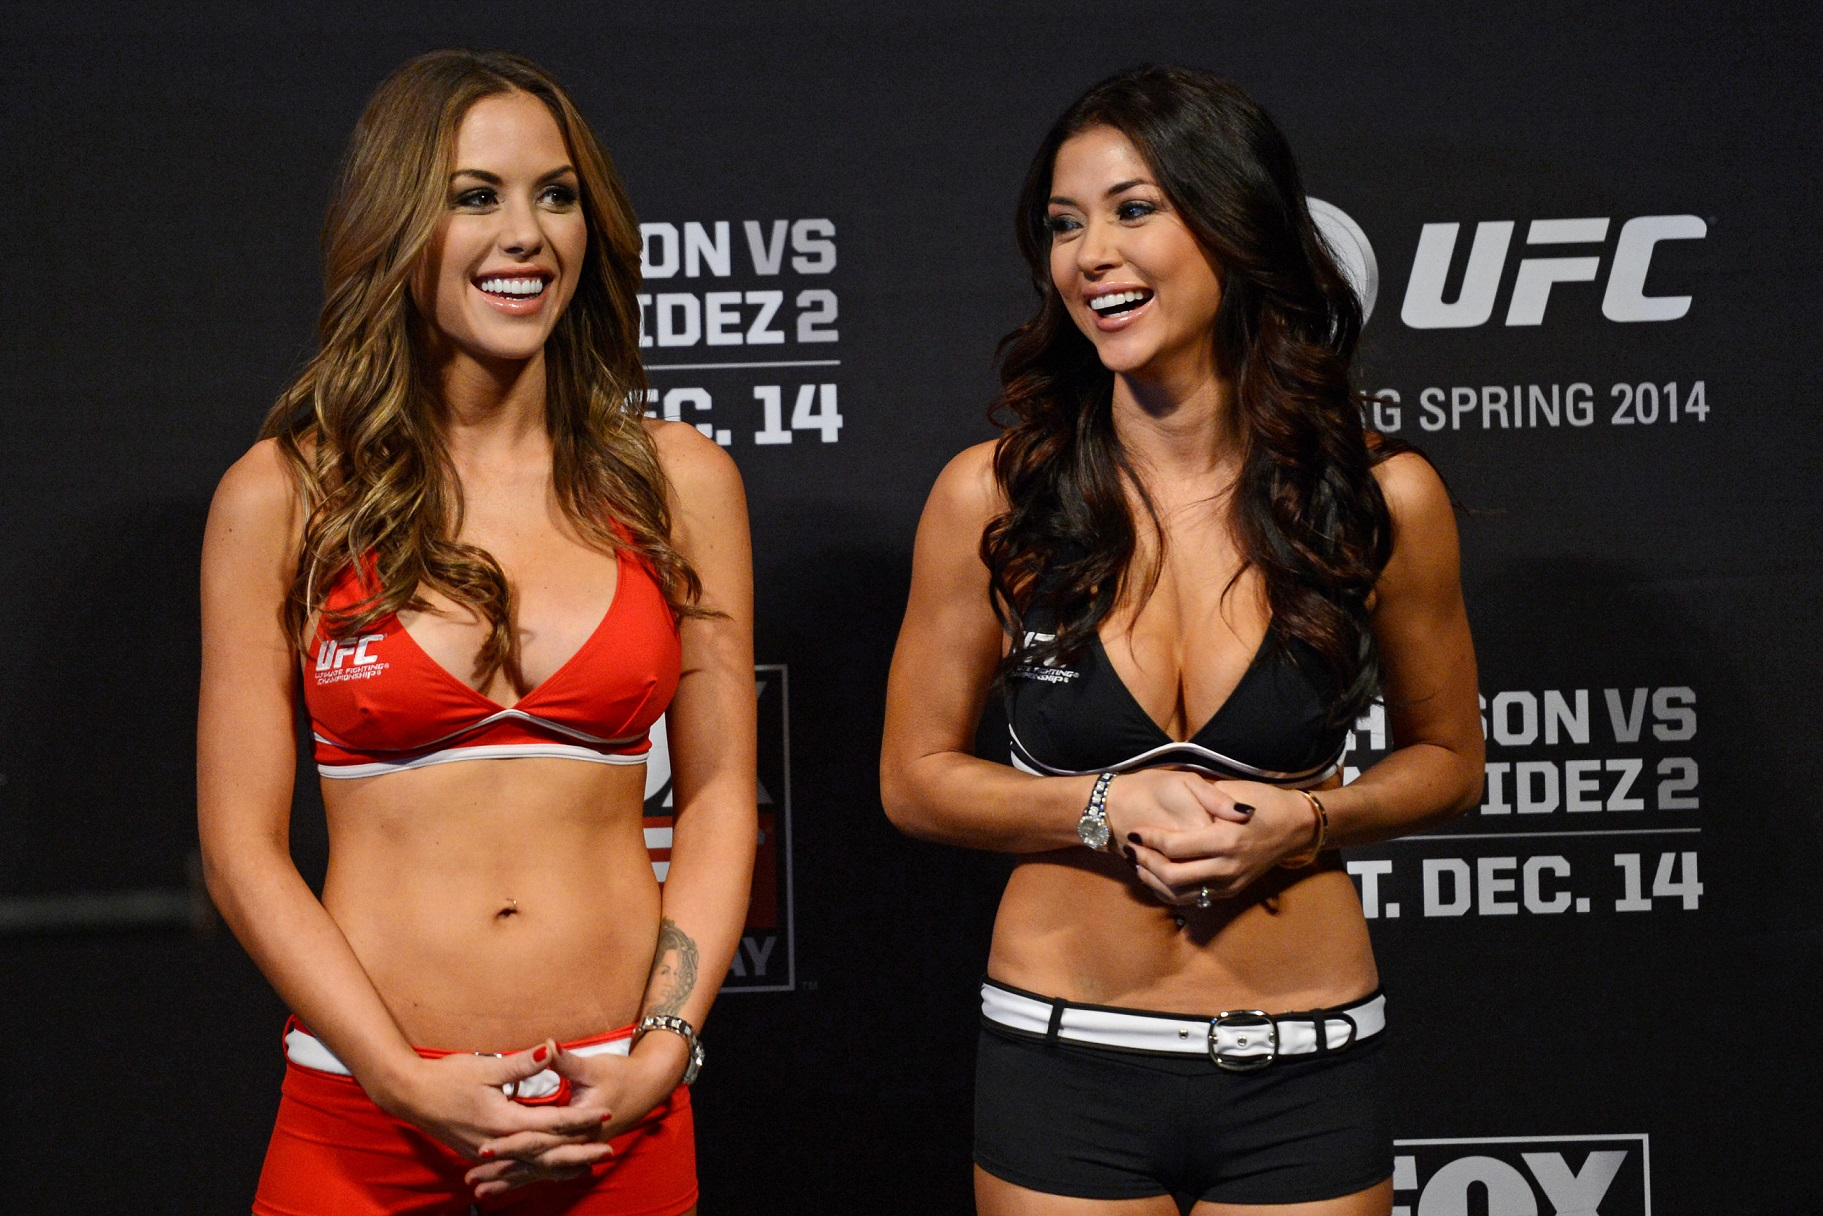 The Evolution of the UFC Octagon Girl